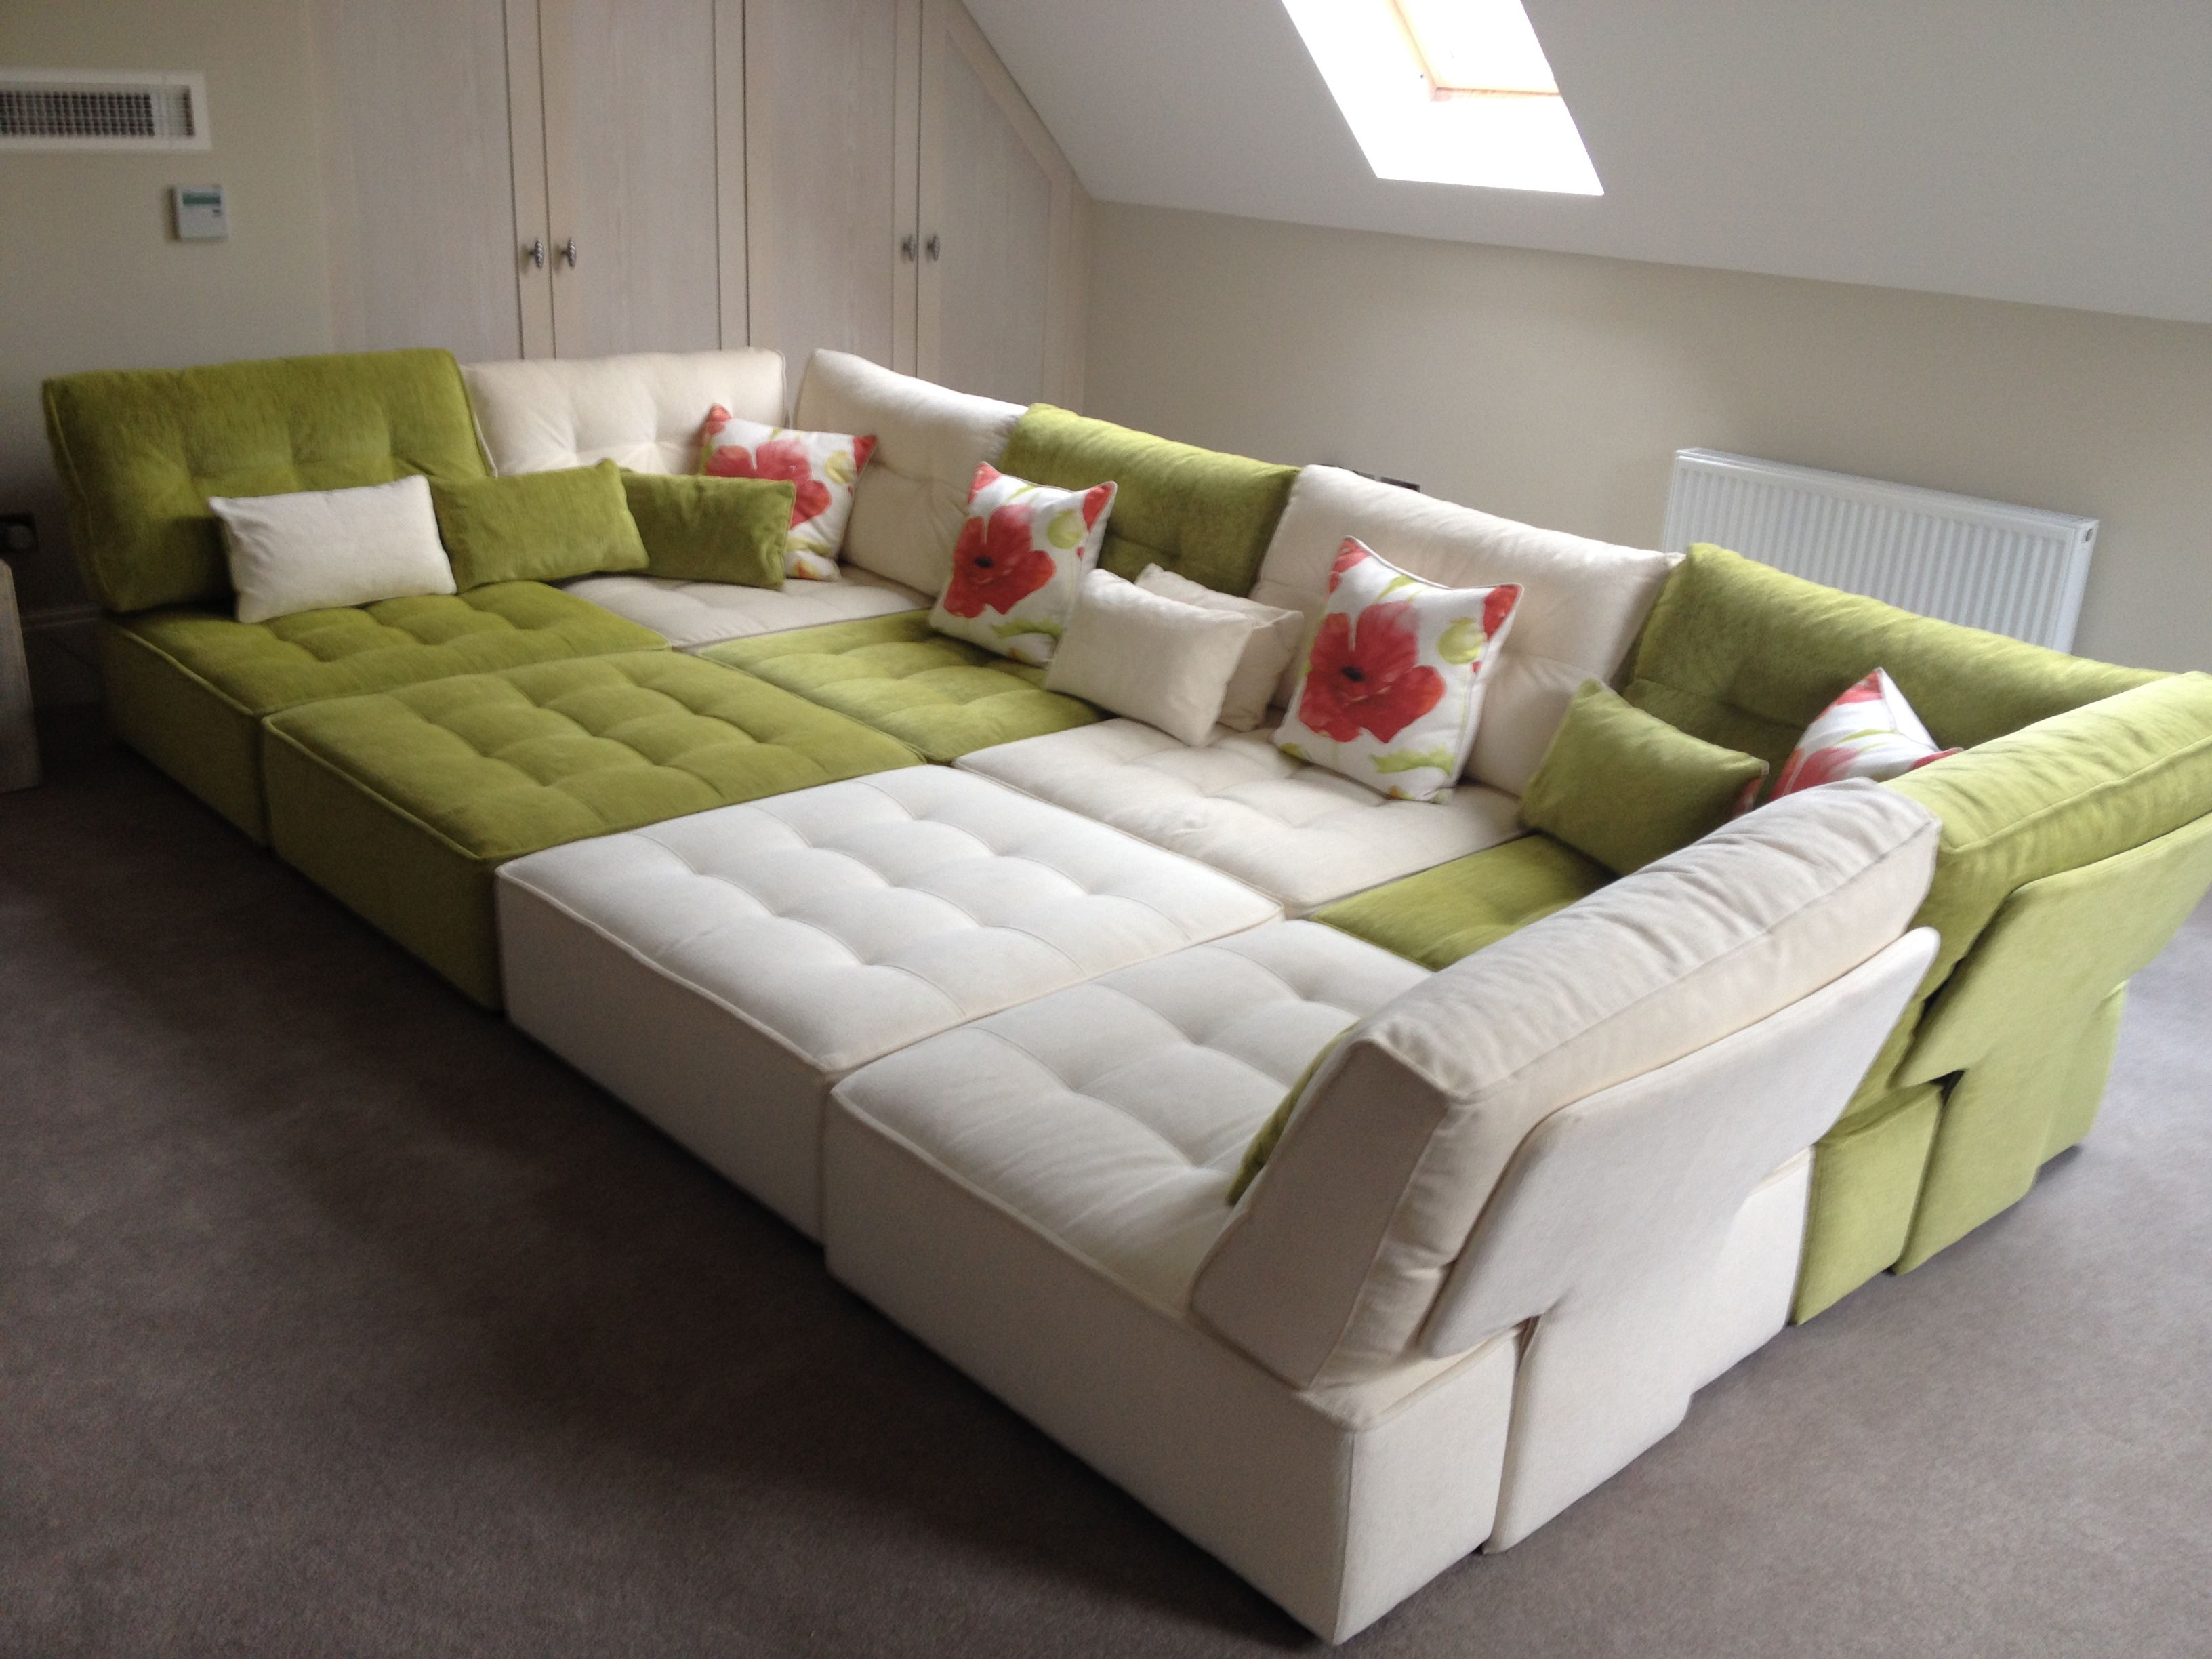 Schlafsofas Big Big Space Cinema Room How About These Super Fun Too Ideas De